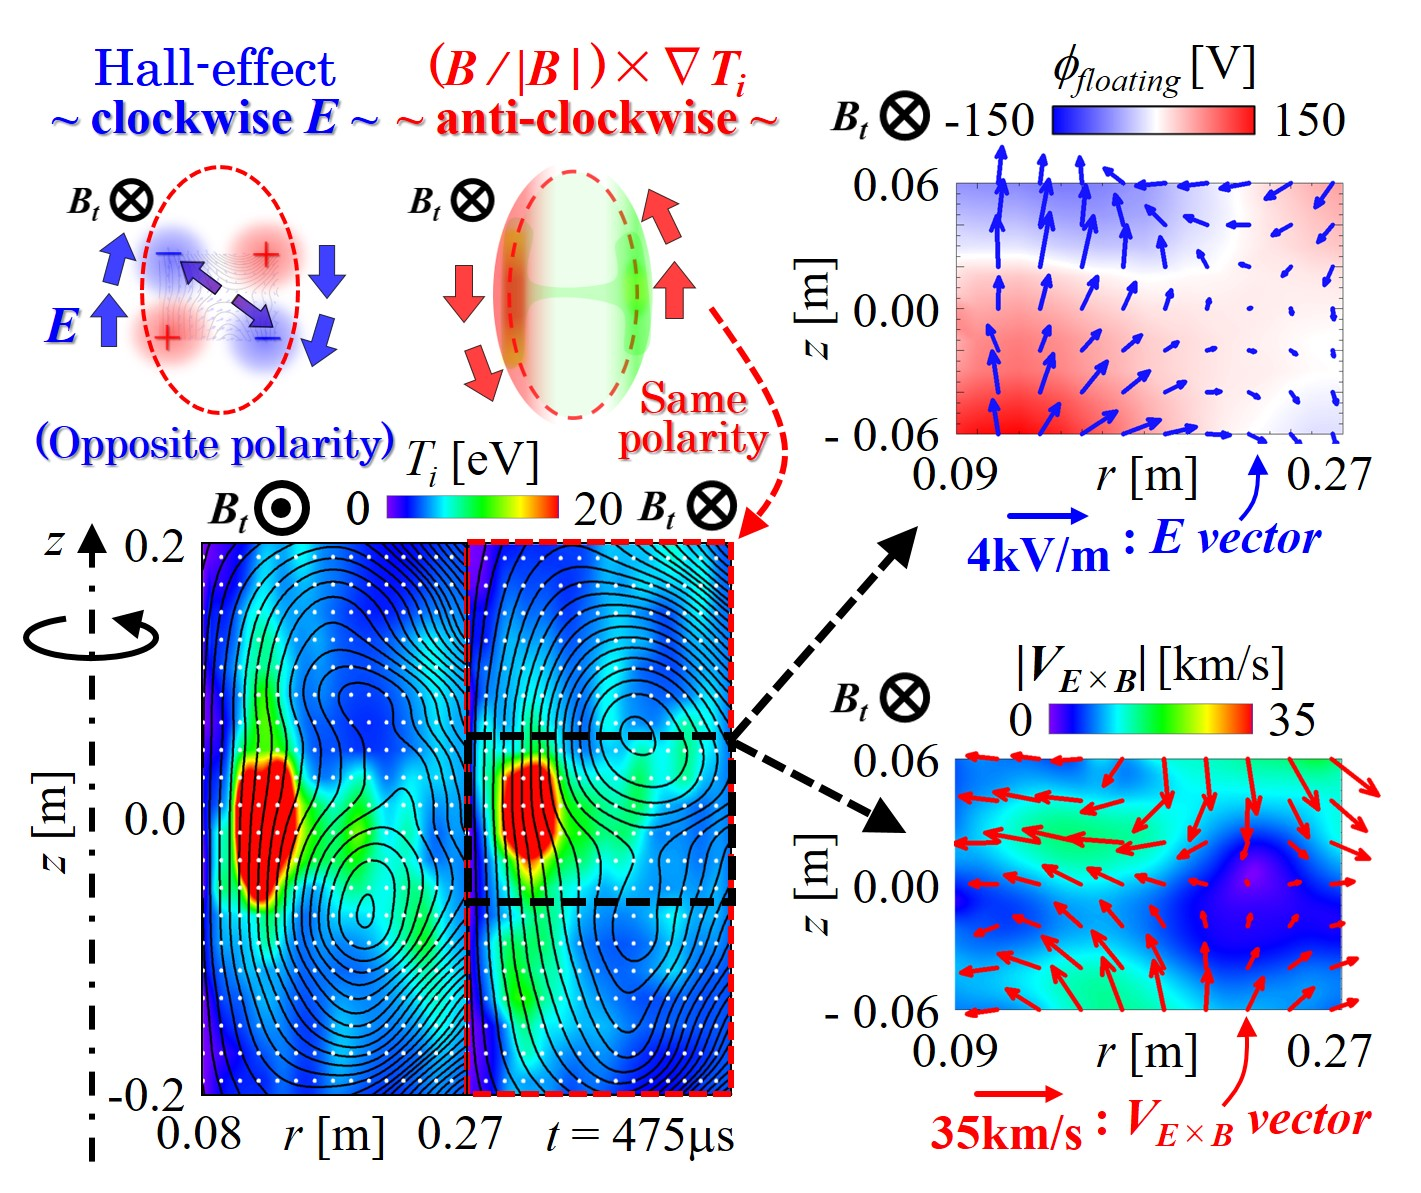 Comparison of 2 models (Hall-effect v.s. $(B/ B )\times\nabla T_i$) for the polarity formation process. Hall electric field $E$ exists but its contribution is mainly on inboard-outboard asymmetry of $T_i$ (higher $E$ and $V_{E\times B}$ in high field side). The global $T_i$ profile shows that the polarity is in $(B/ B )\times\nabla T_i$ direction.